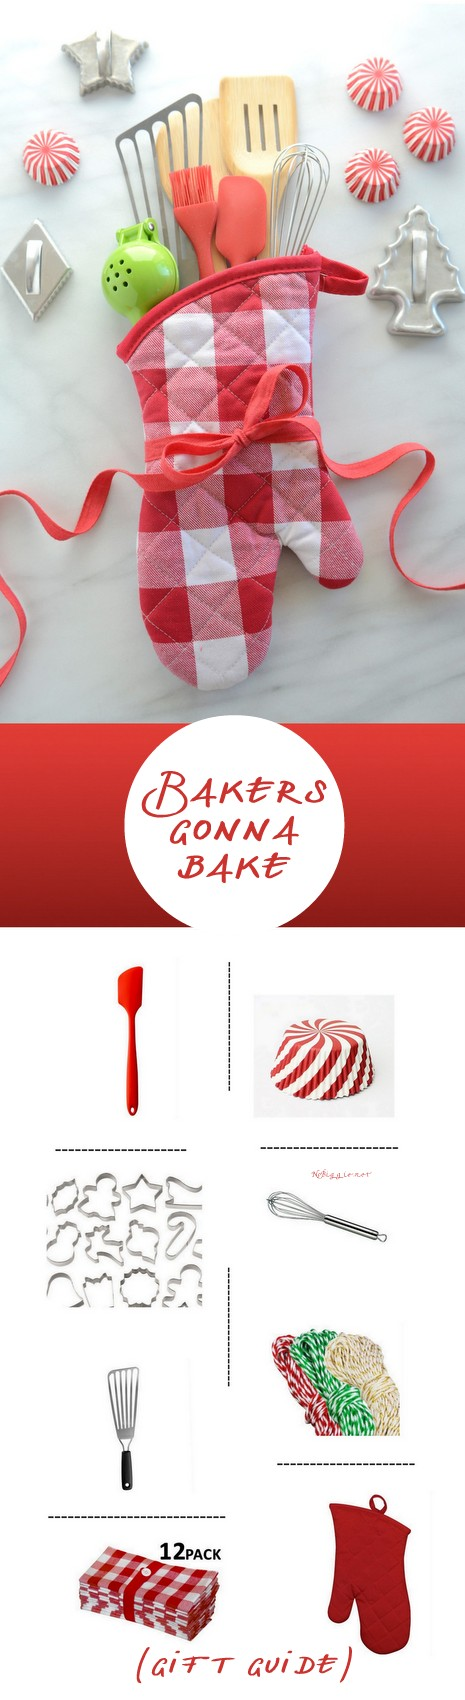 Bakers gonna bake gift guide | NoBiggie.net